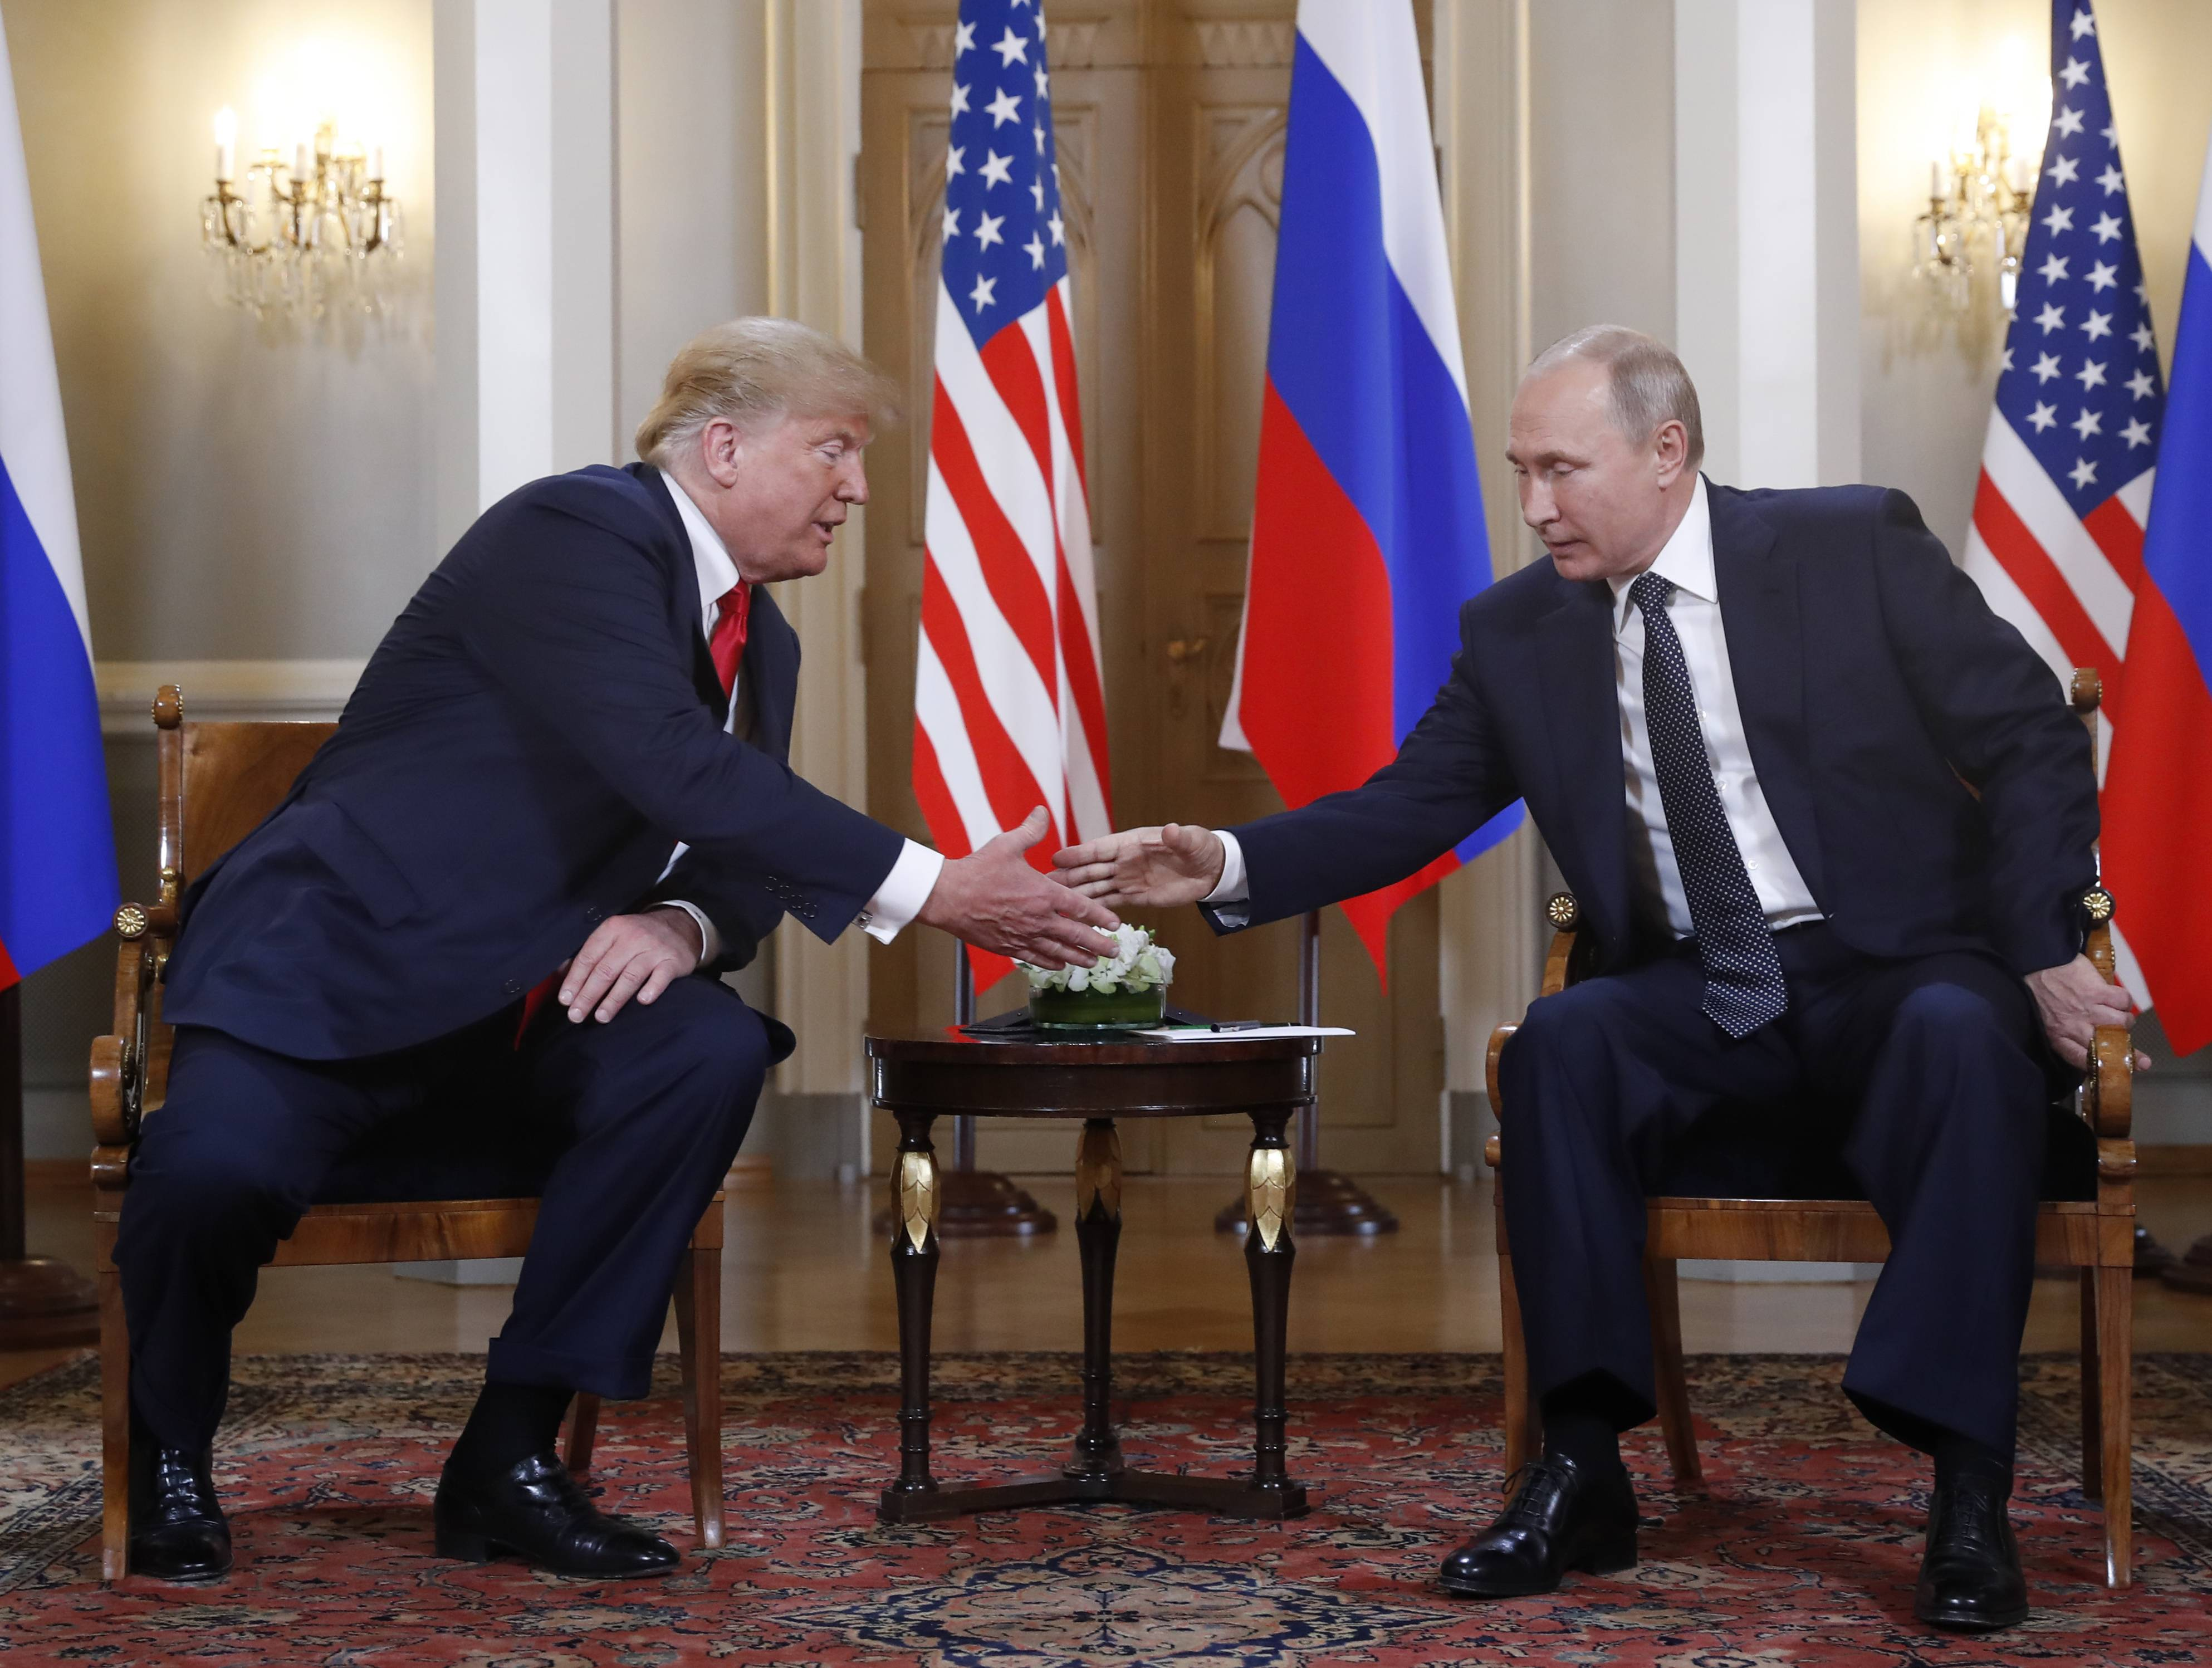 U.S. President Donald Trump, left, and Russian President Vladimir Putin shake hands Monday at the beginning of a meeting at the Presidential Palace in Helsinki, Finland.